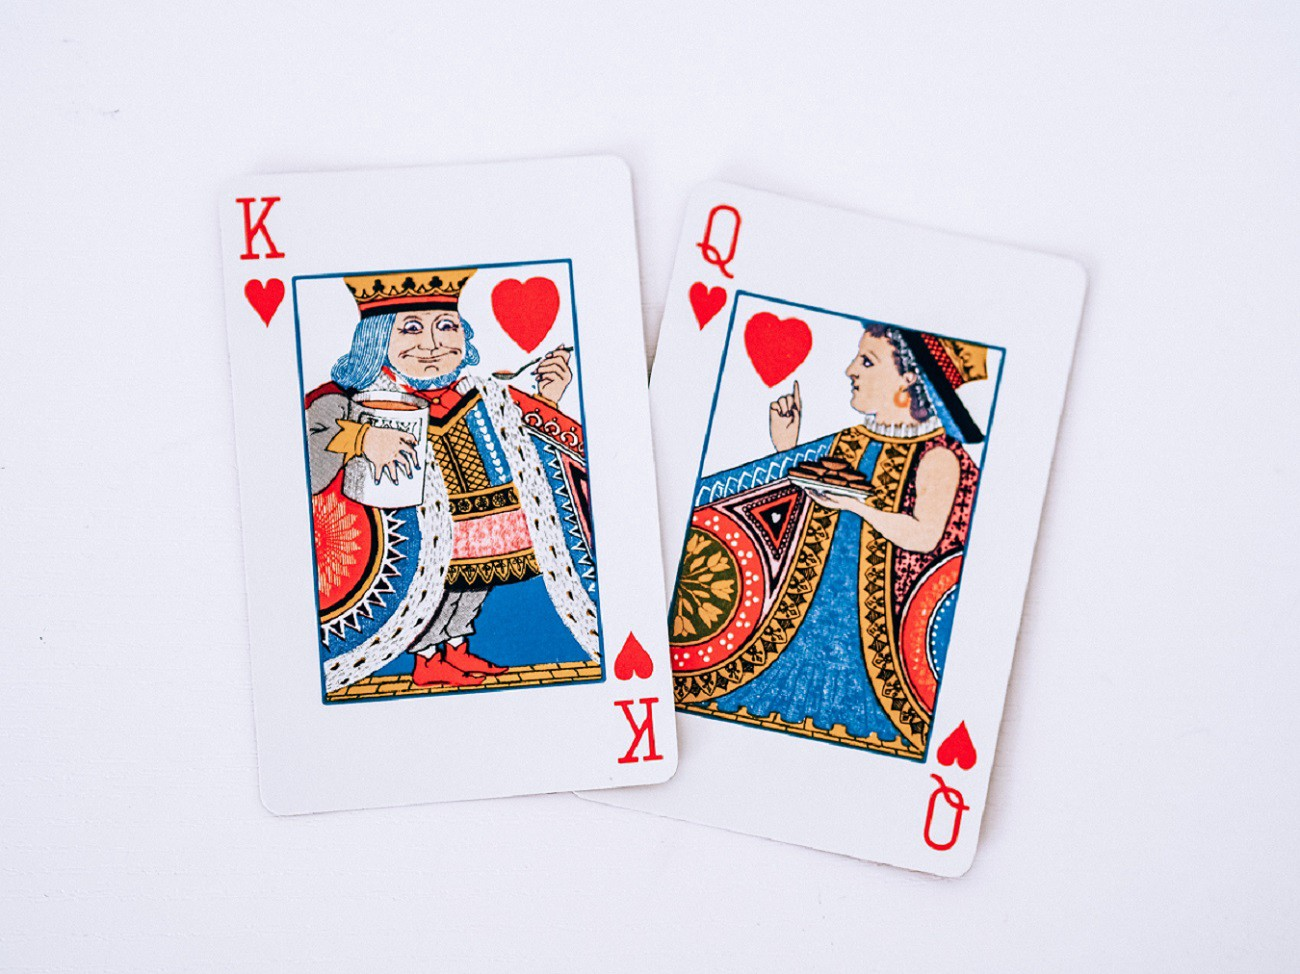 King and queen of hearts playing cards